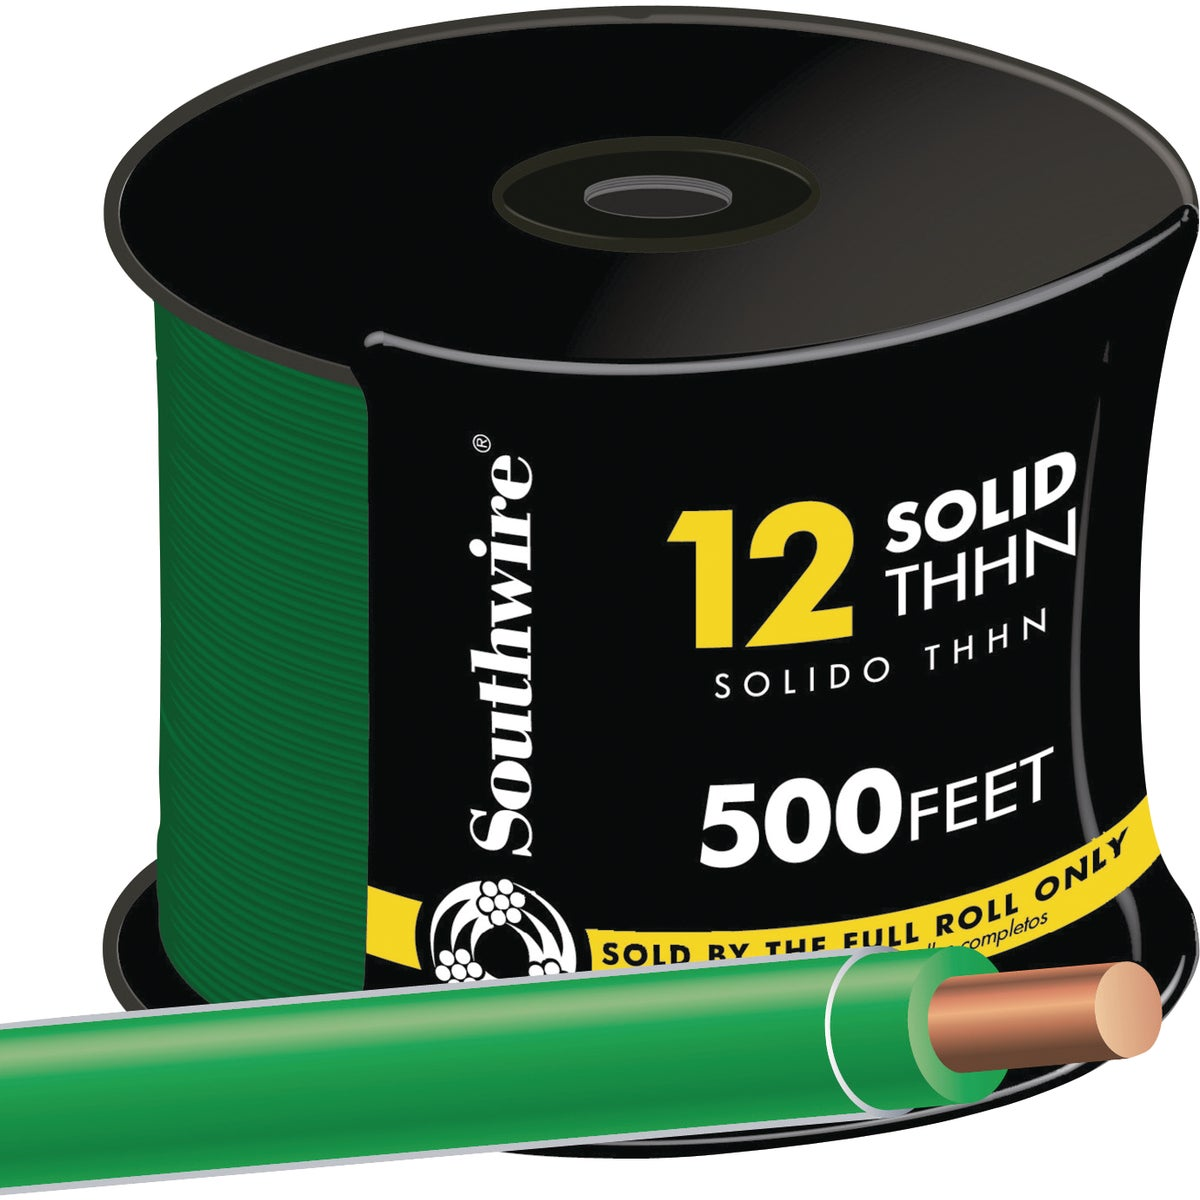 500' 12SOL GRN THHN WIRE - 11591558 by Southwire Company